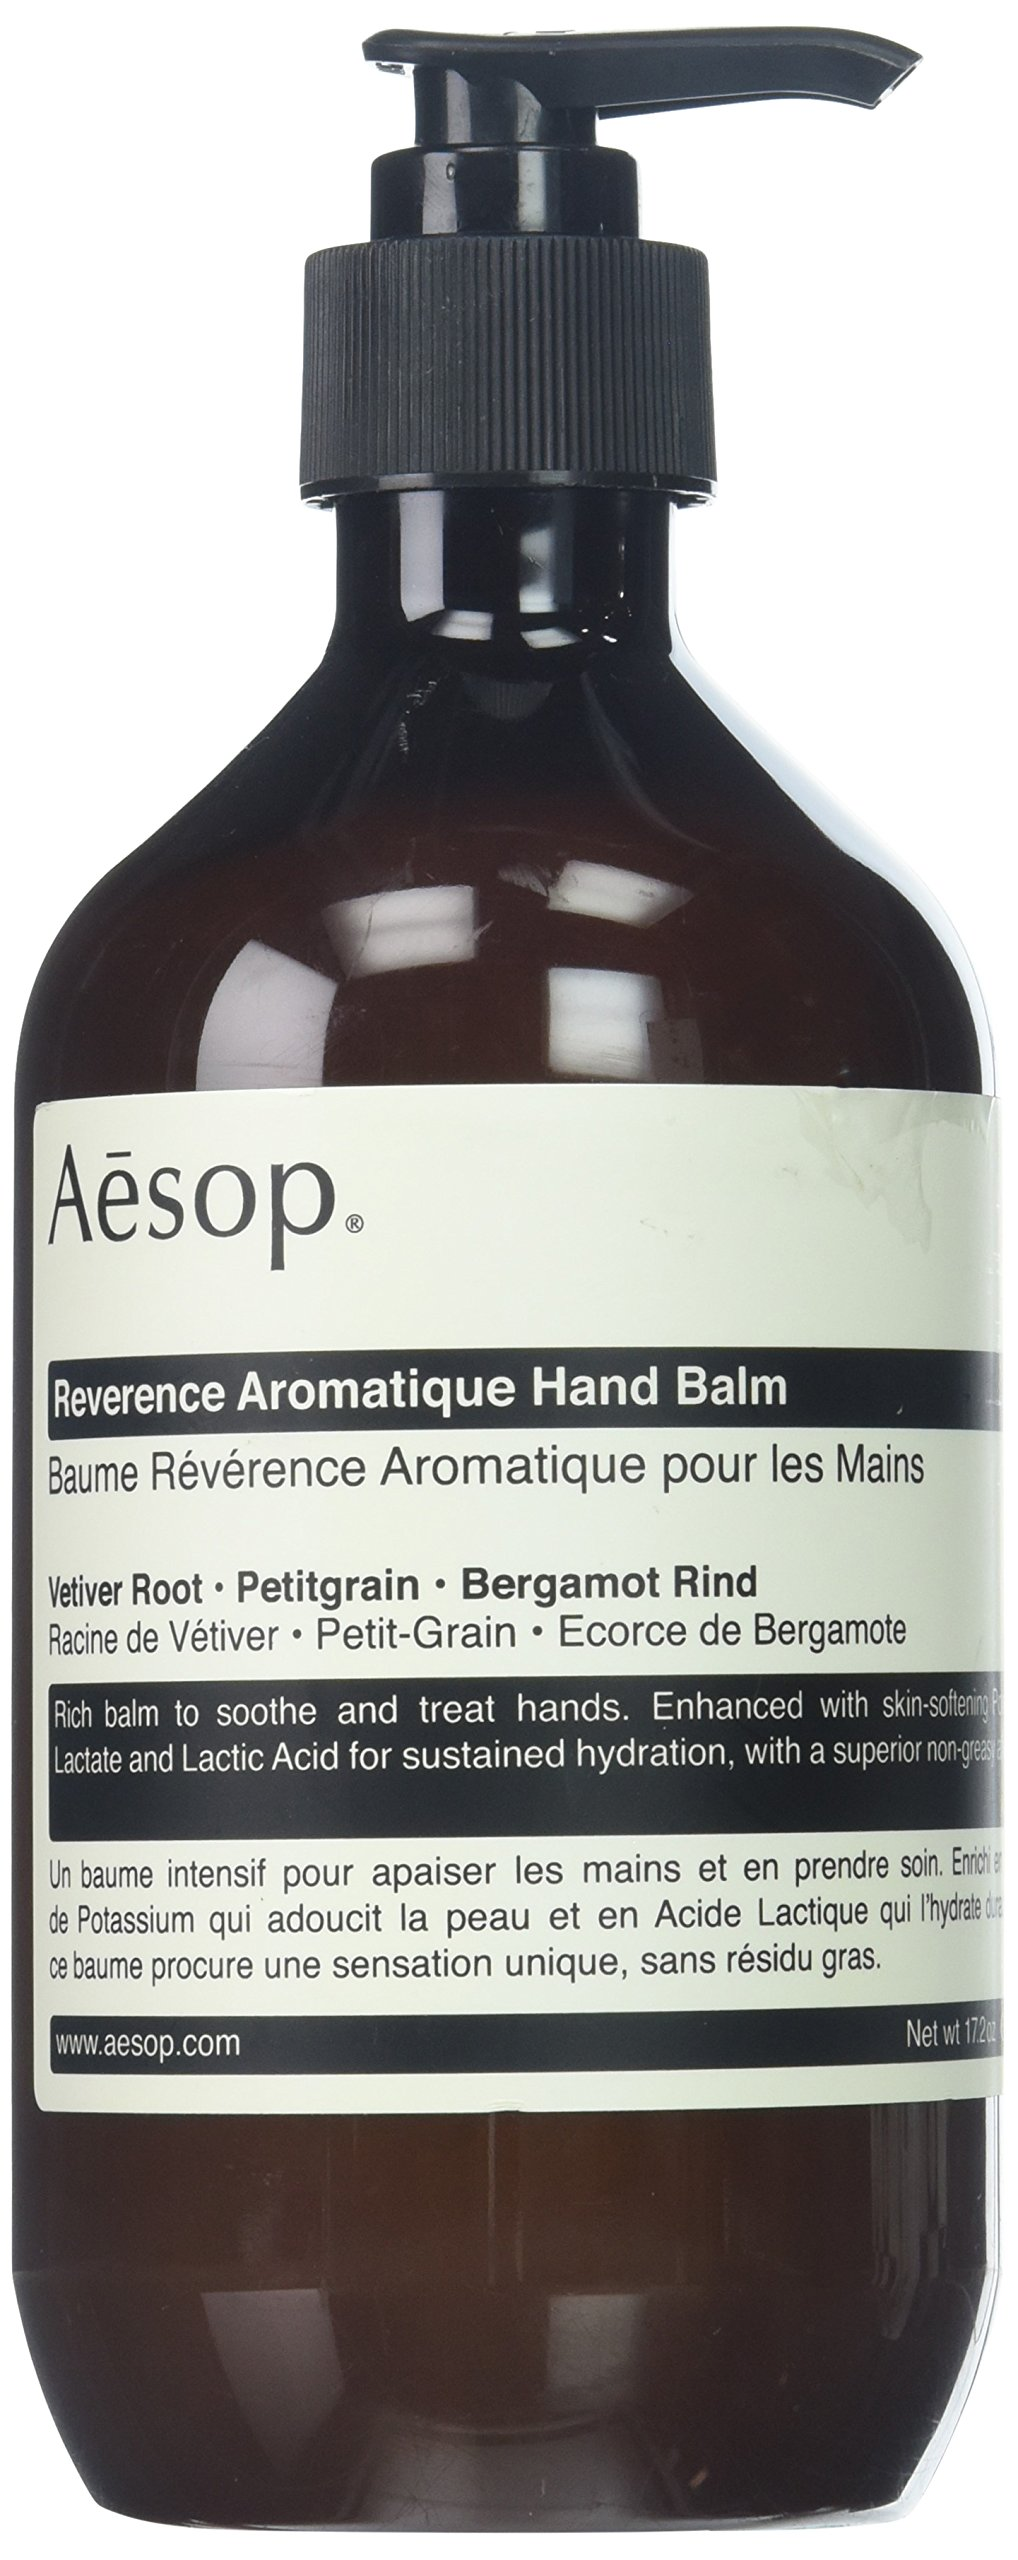 Aesop Reverence Aromatique Hand Balm, 17.2 Ounce